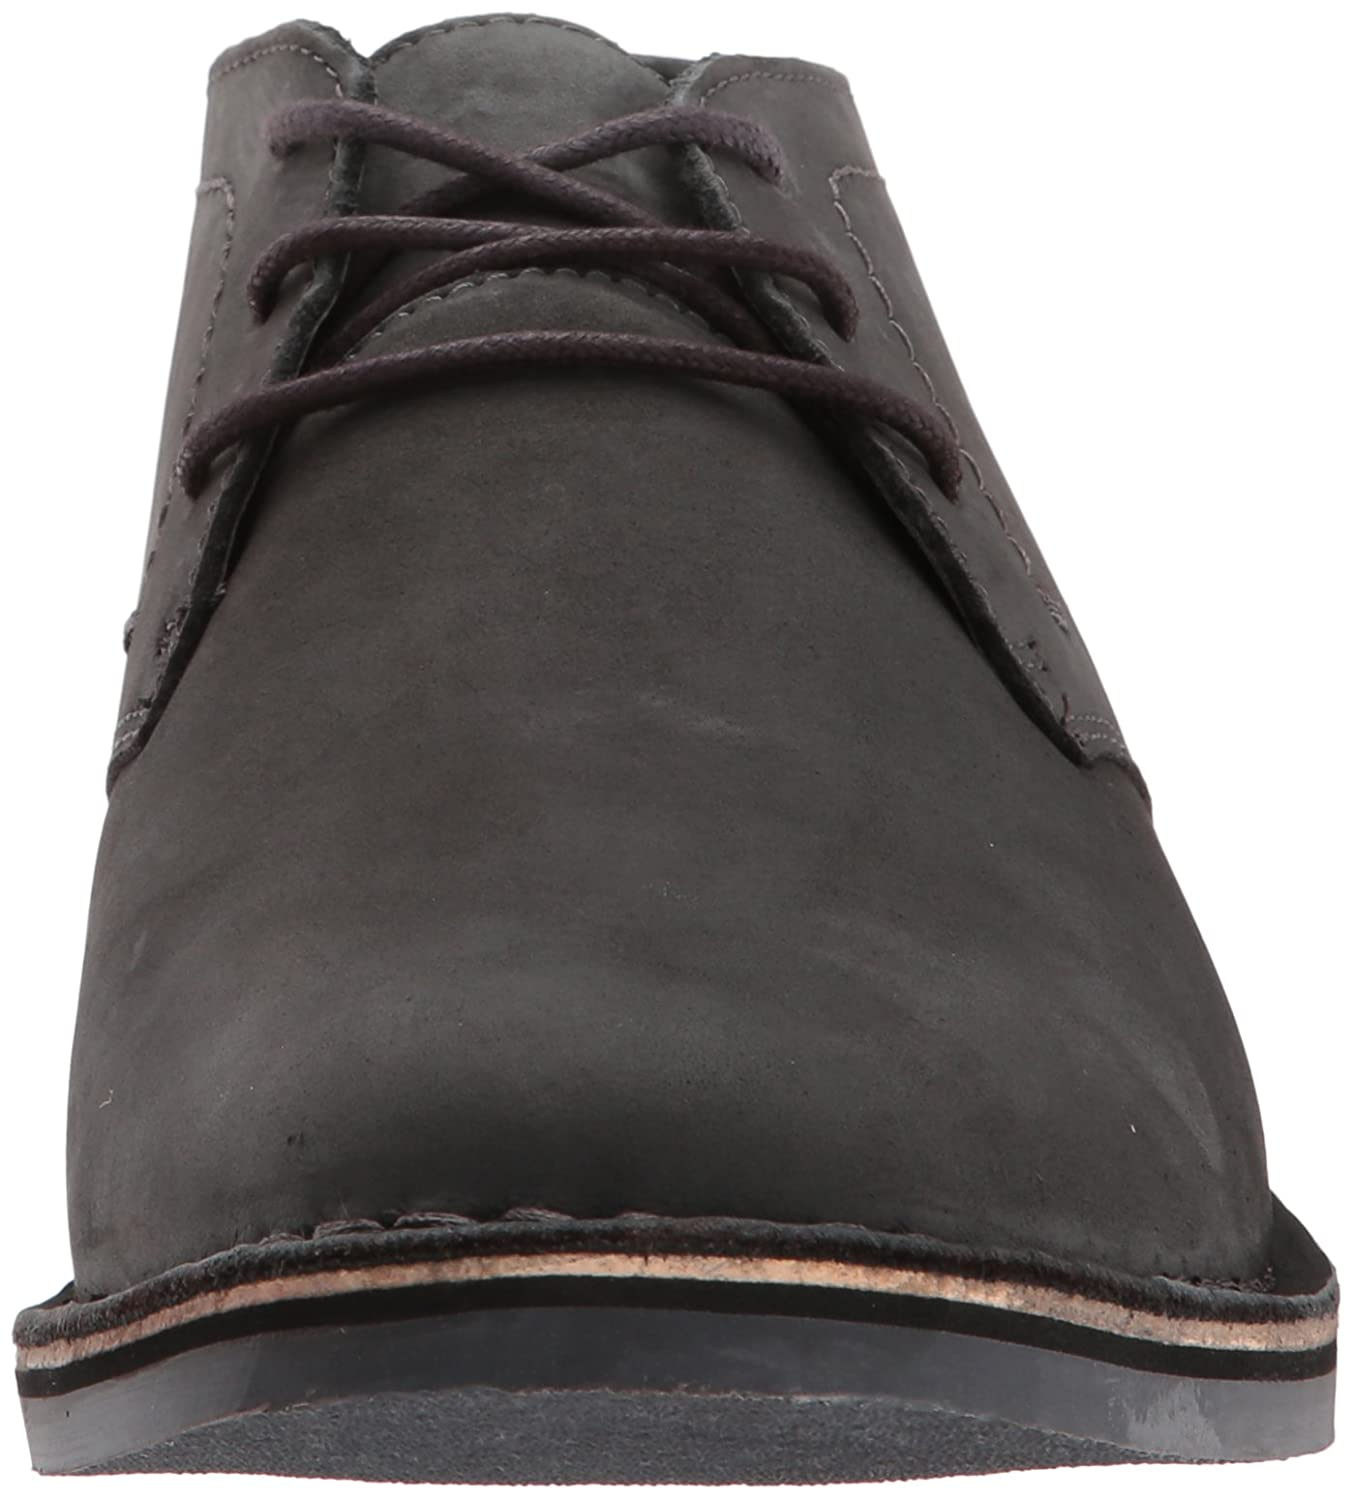 Kenneth Cole REACTION Men's Pebbled Leather Chukka Boot RM62212Pebbled Leather